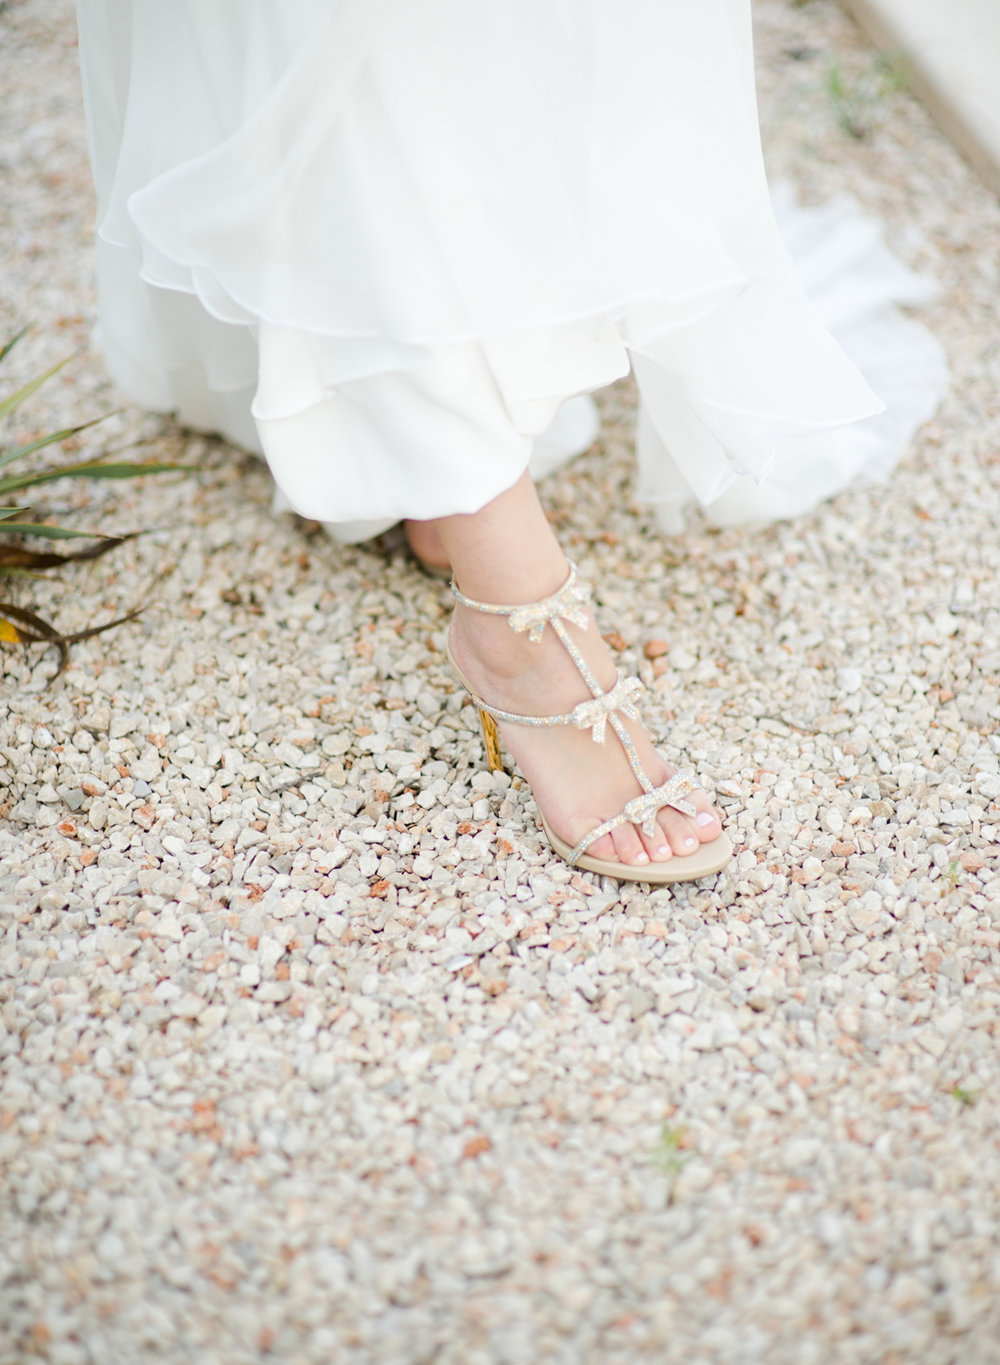 PROSPECT_HOUSE_WEDDING_AUSTIN_TX_BY_MATTHEW_MOORE_PHOTOGRAPHY_00099.jpg